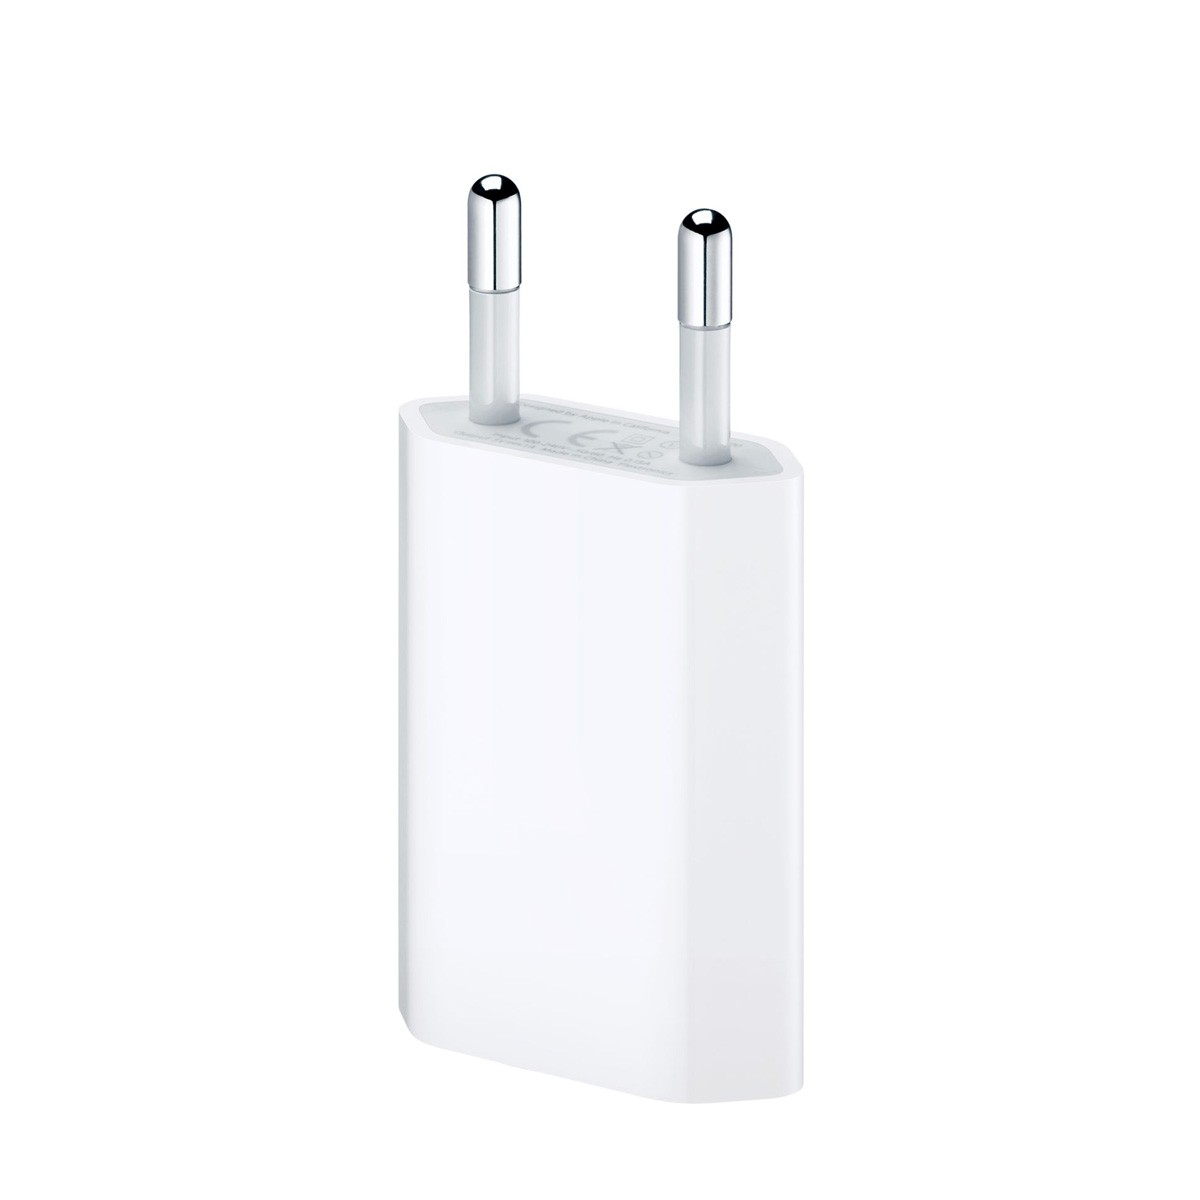 Apple - 5 wattos USB hálózati adapter (EU)